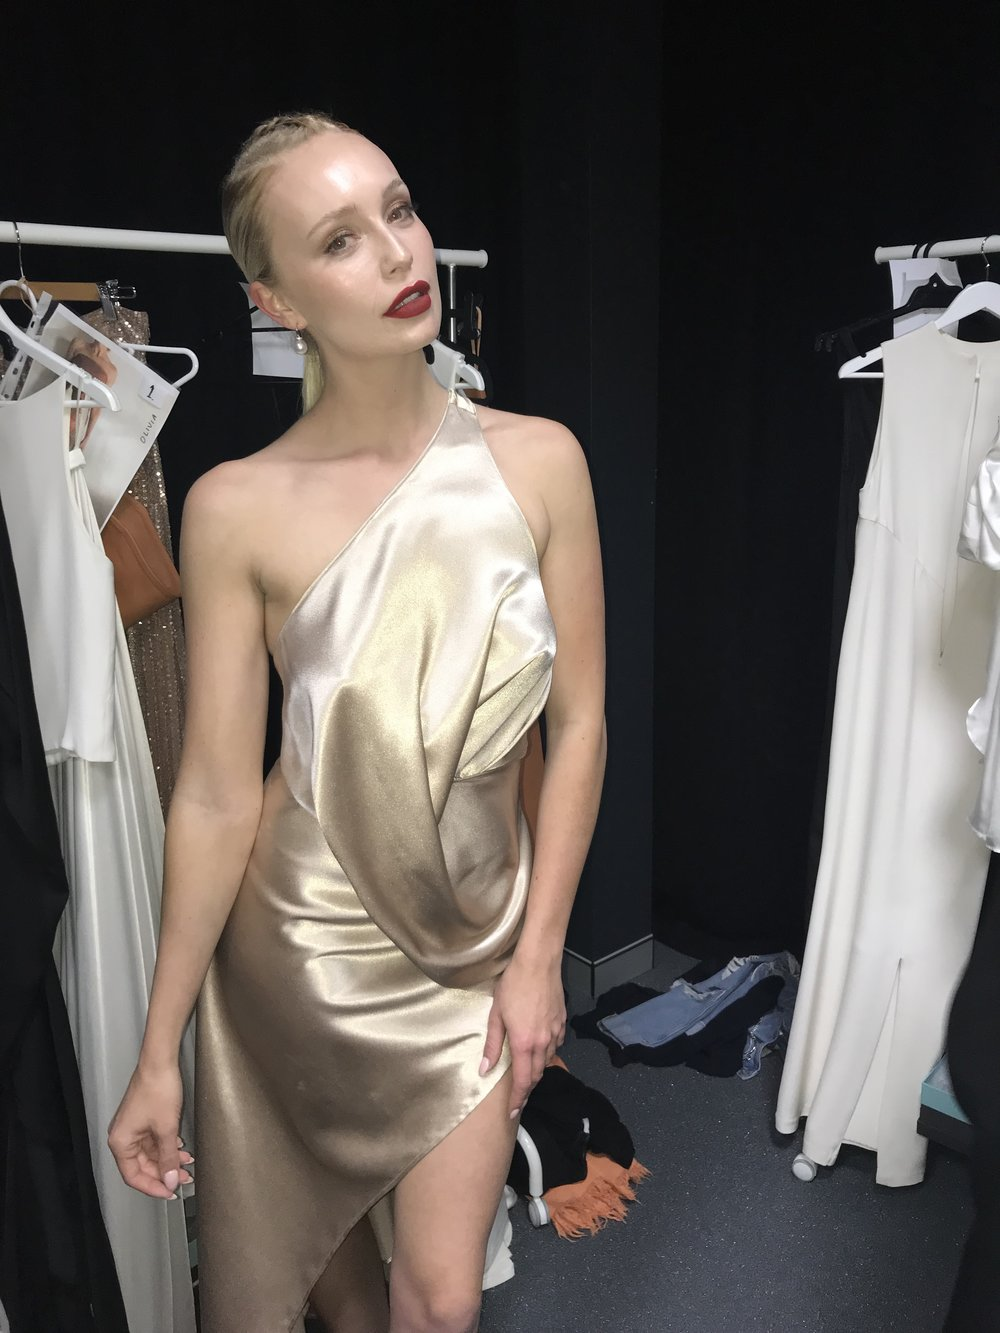 Behind the scenes at Perth Fashion Festival